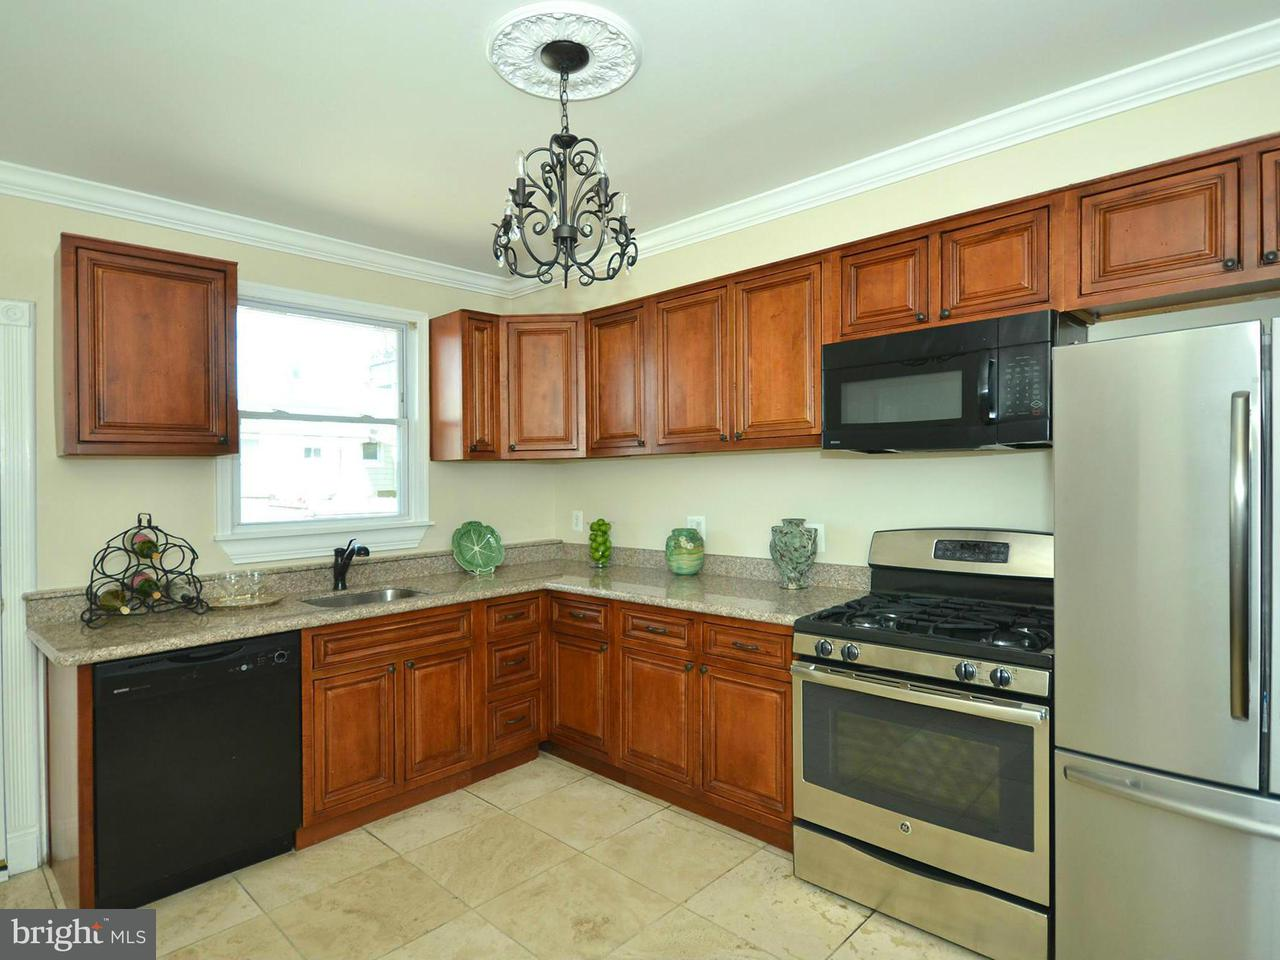 Other Residential for Rent at 314 Newkirk St Baltimore, Maryland 21224 United States